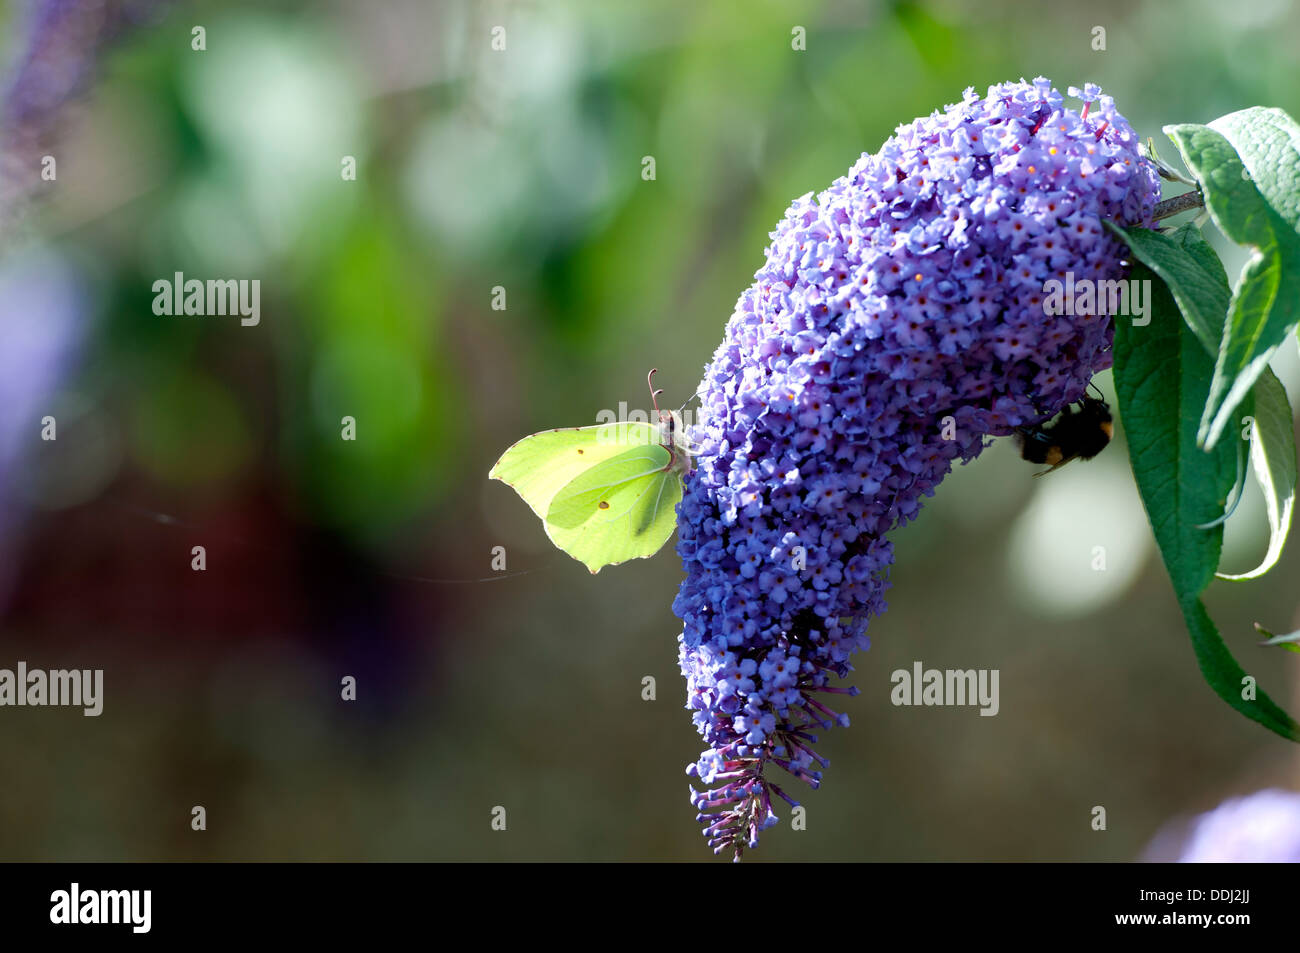 Brimstone (Gonepteryx rhamni) butterfly on Buddleia bush Stock Photo